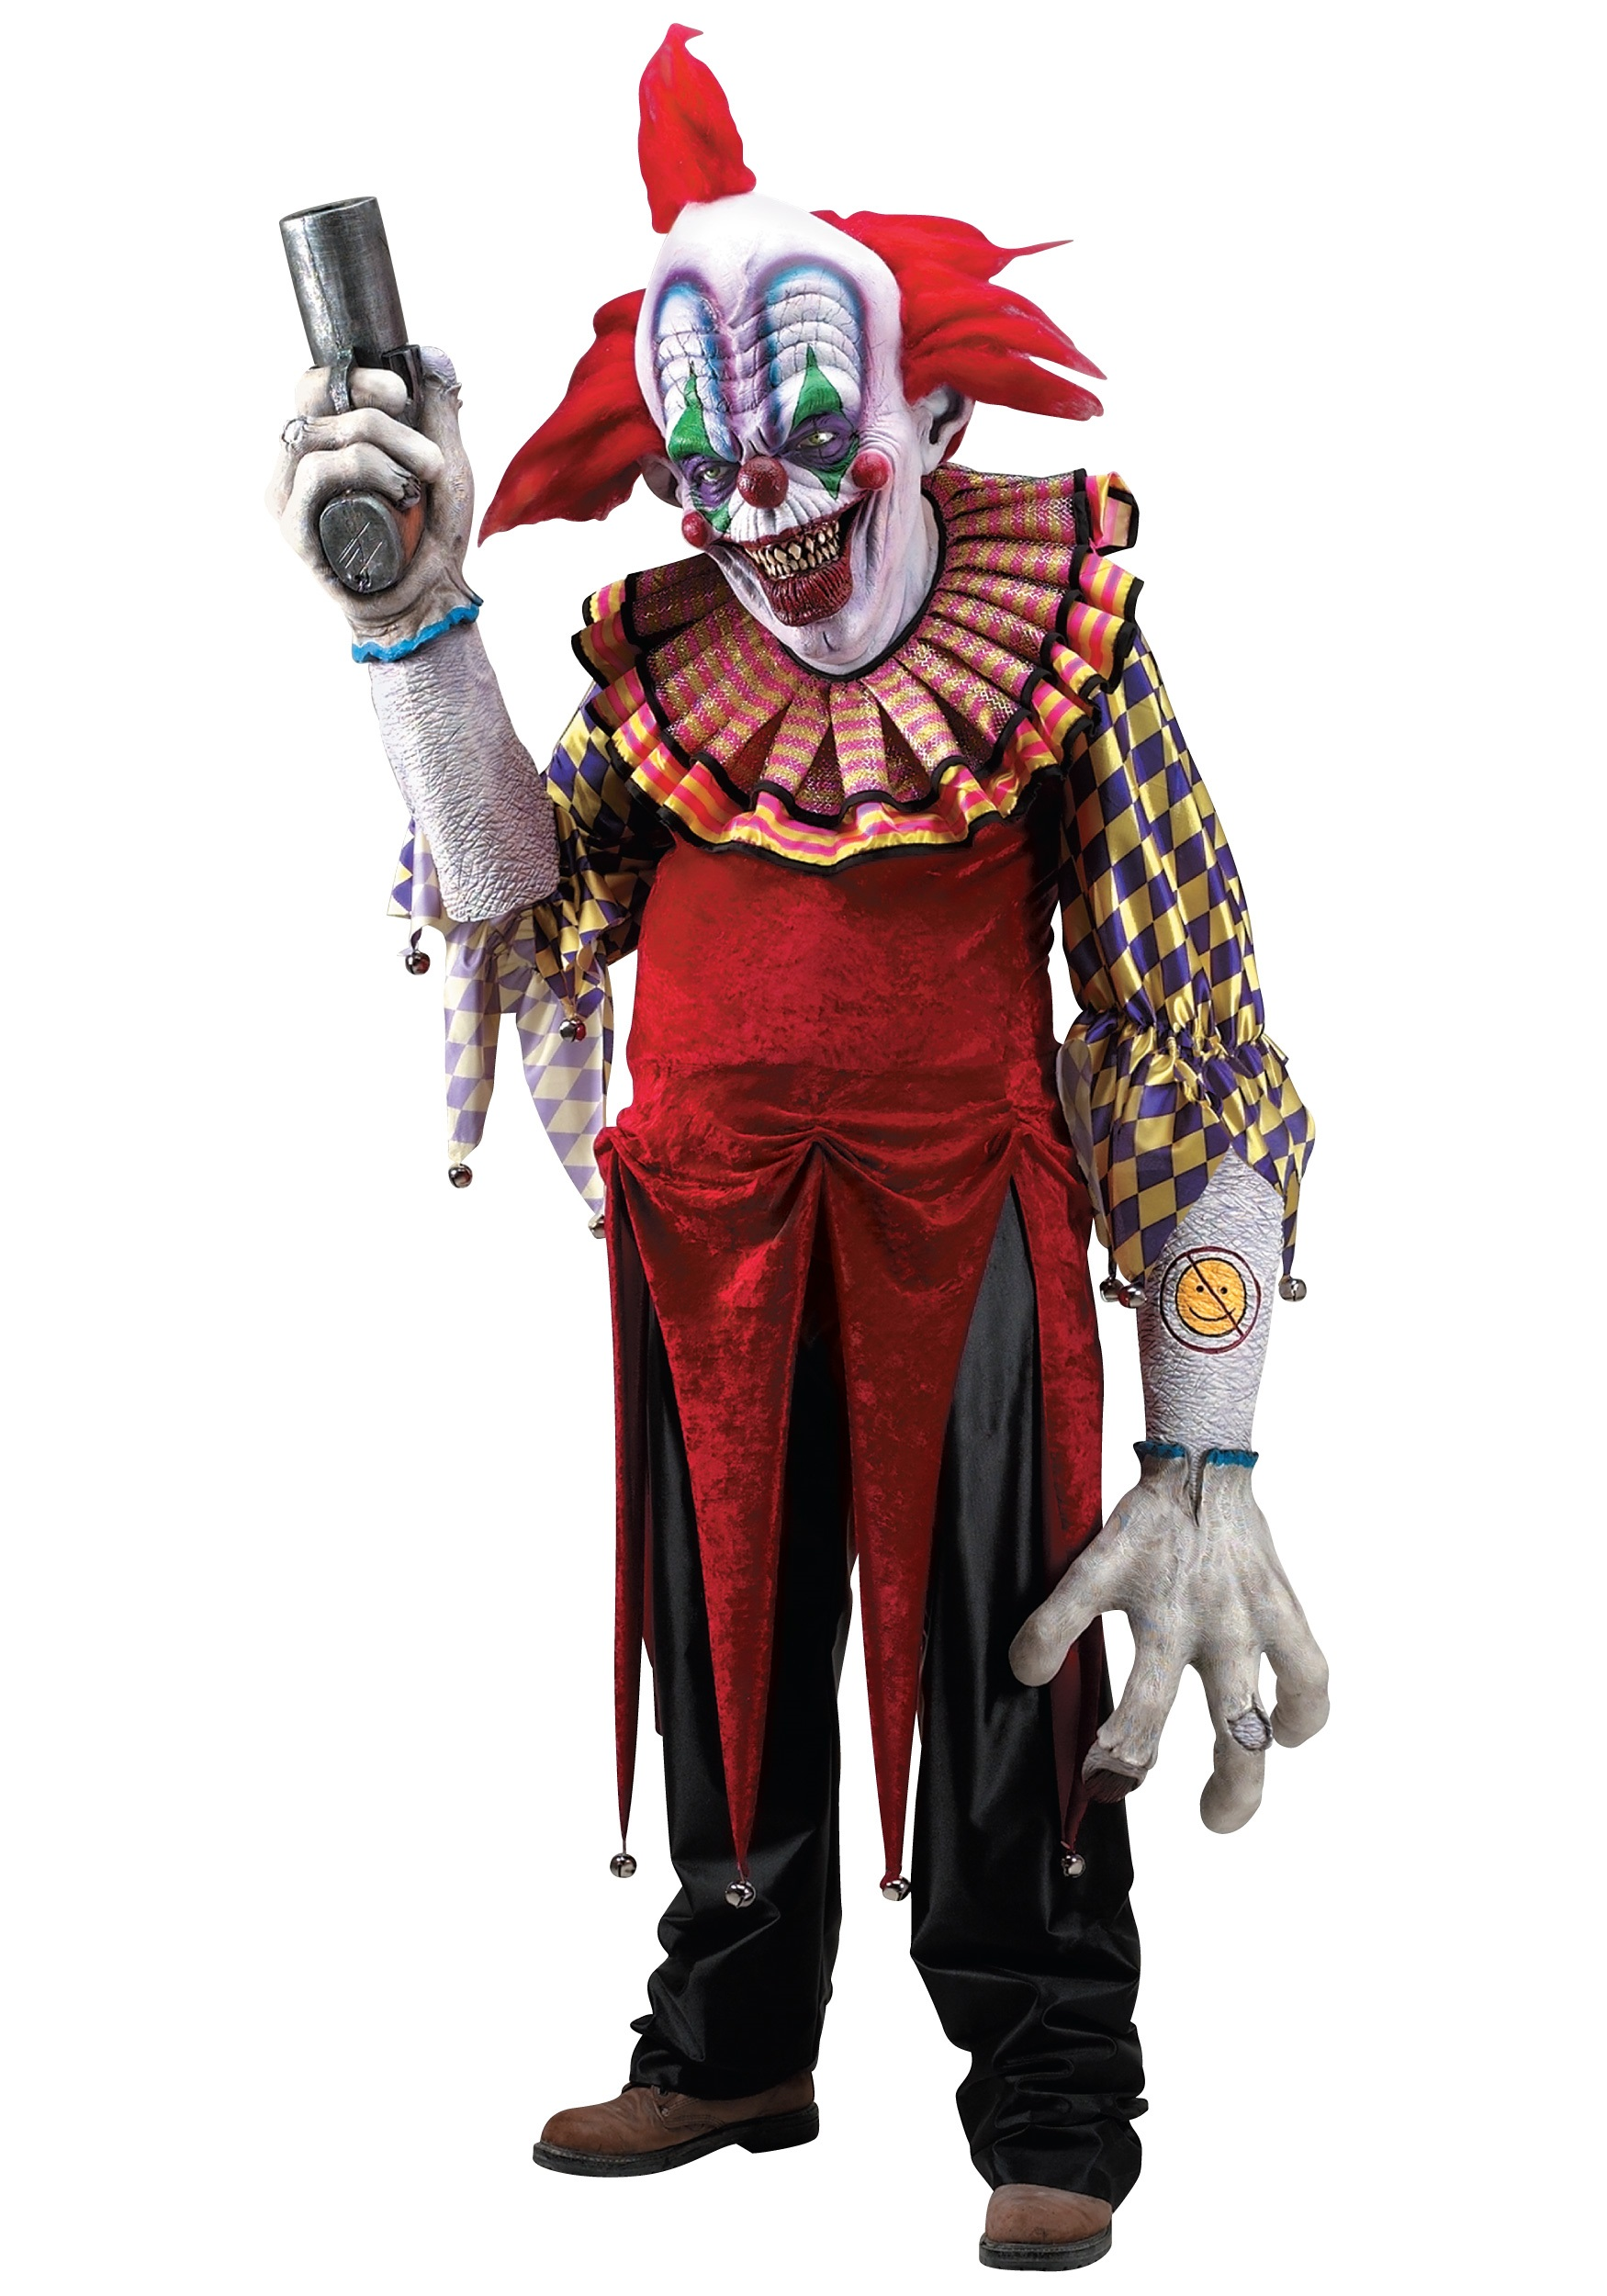 Halloween Clown.Giggles The Clown Creature Reacher Costume